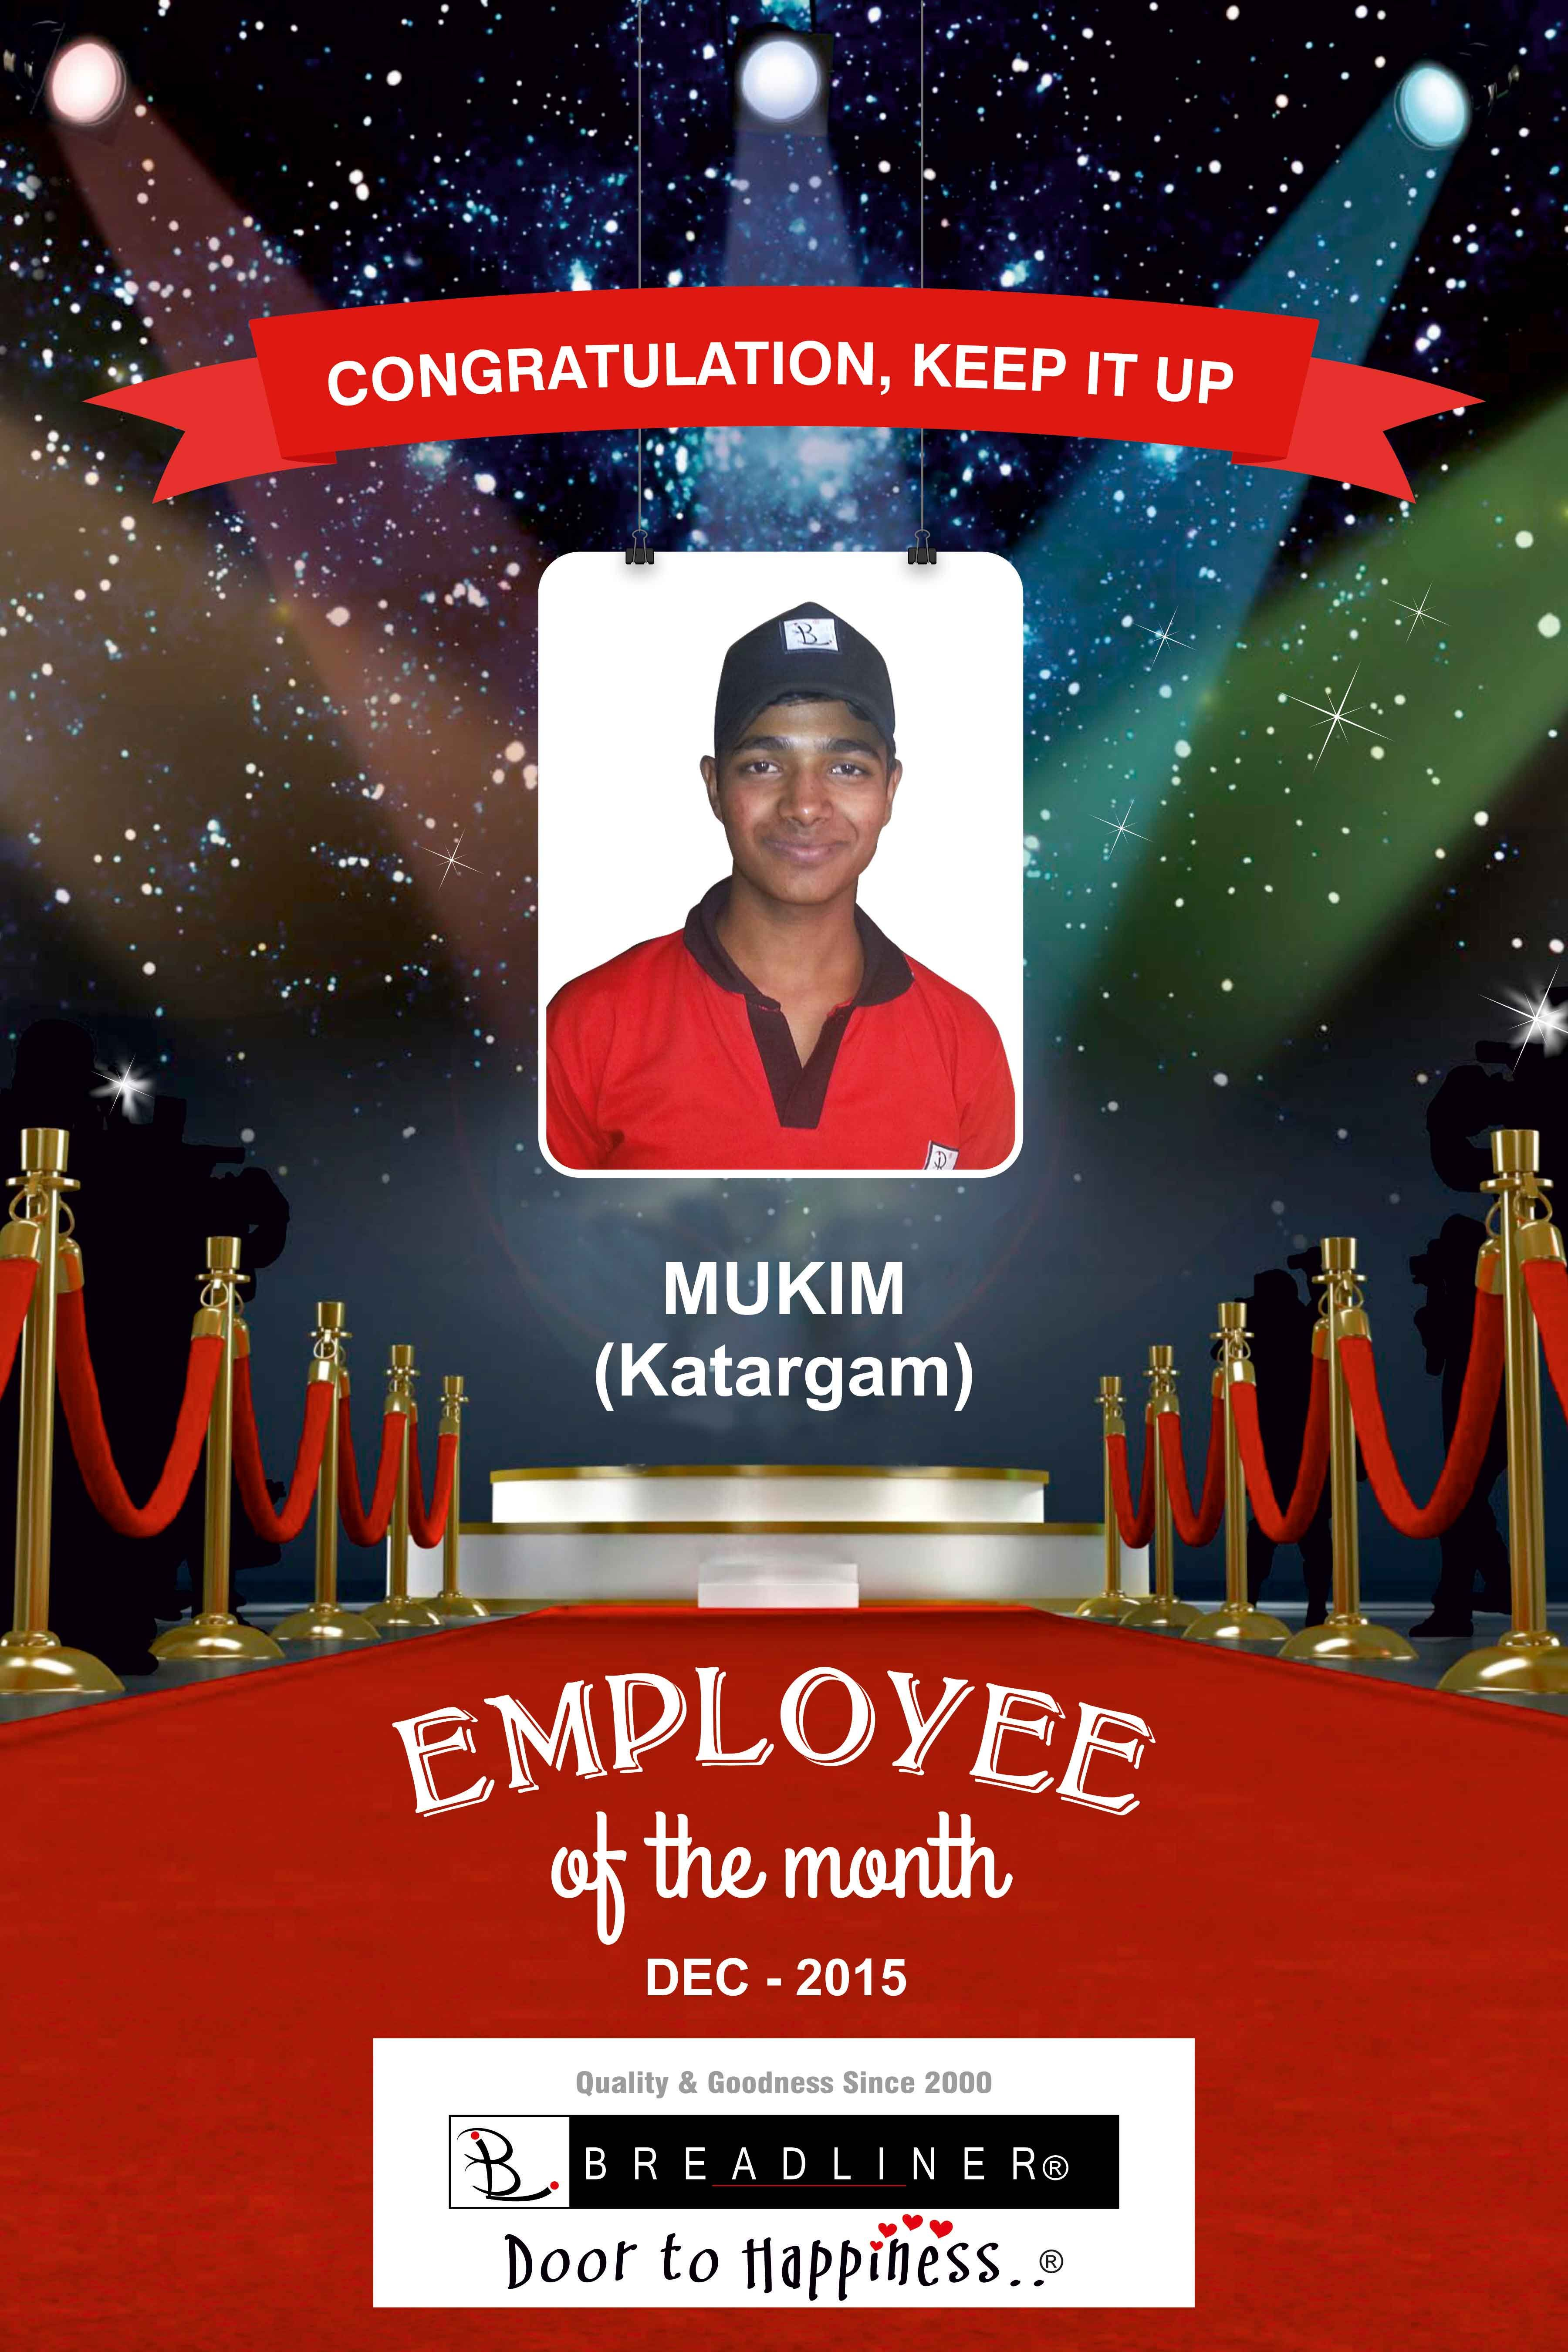 employee of the month | corporate design | employee appreciation